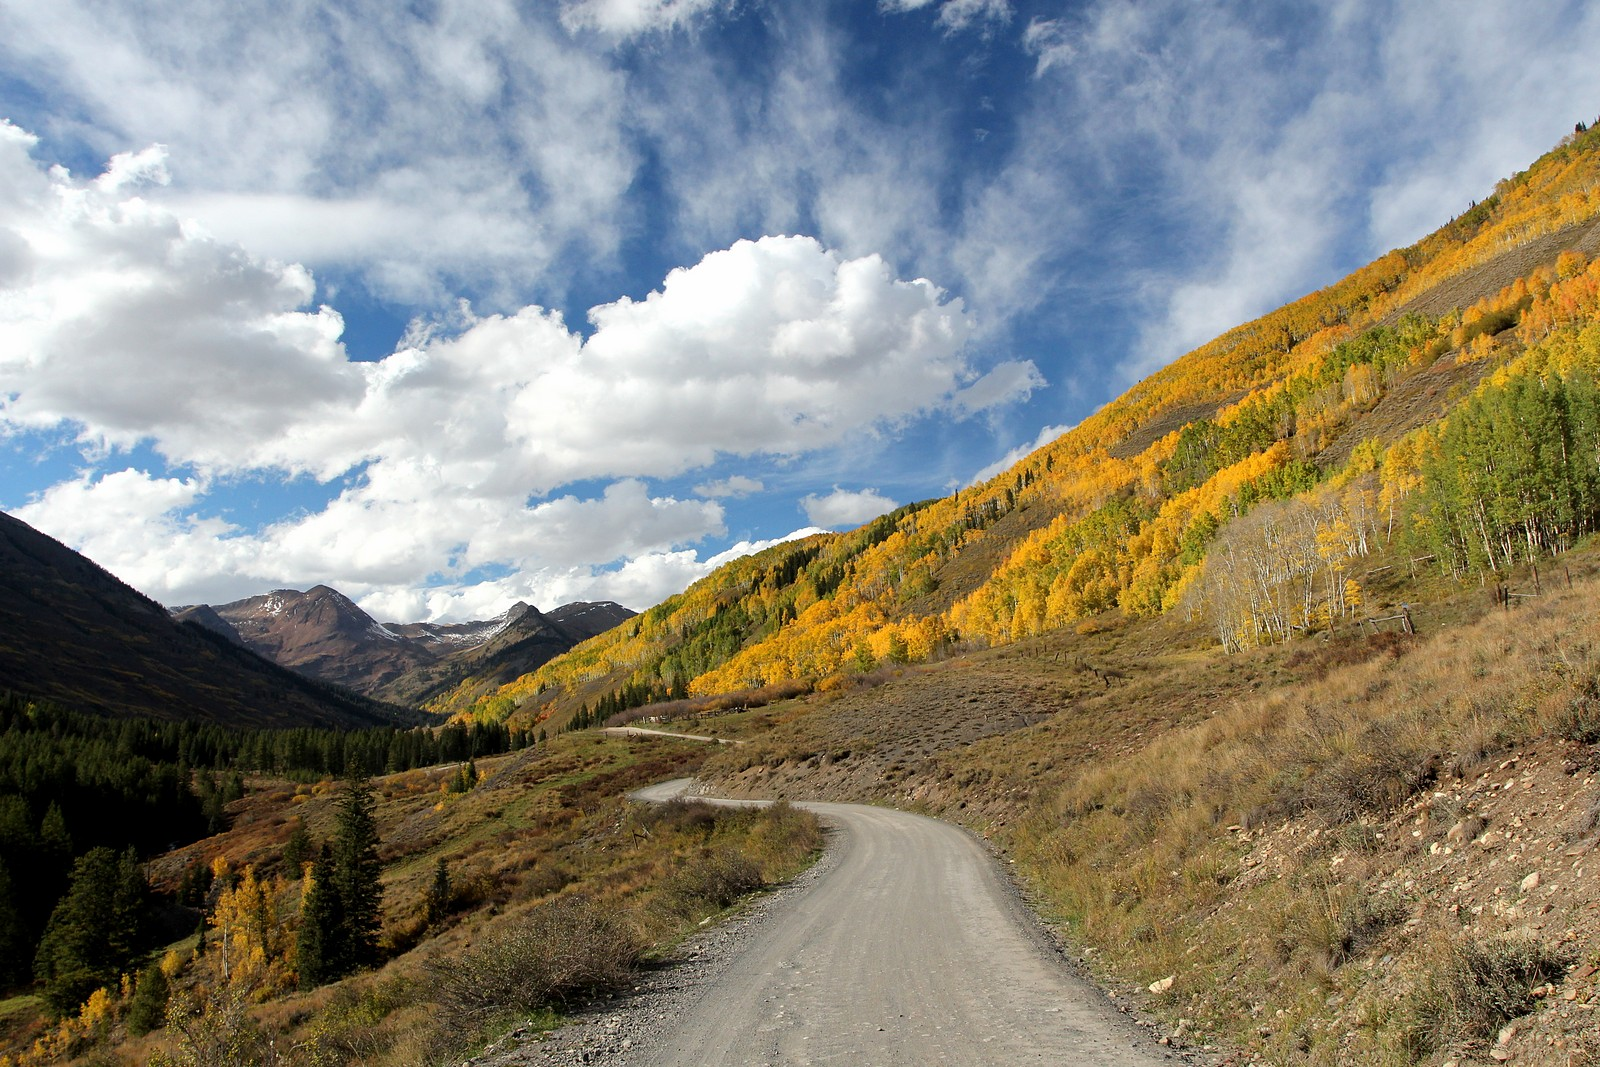 Autumn outside of Crested Butte, CO